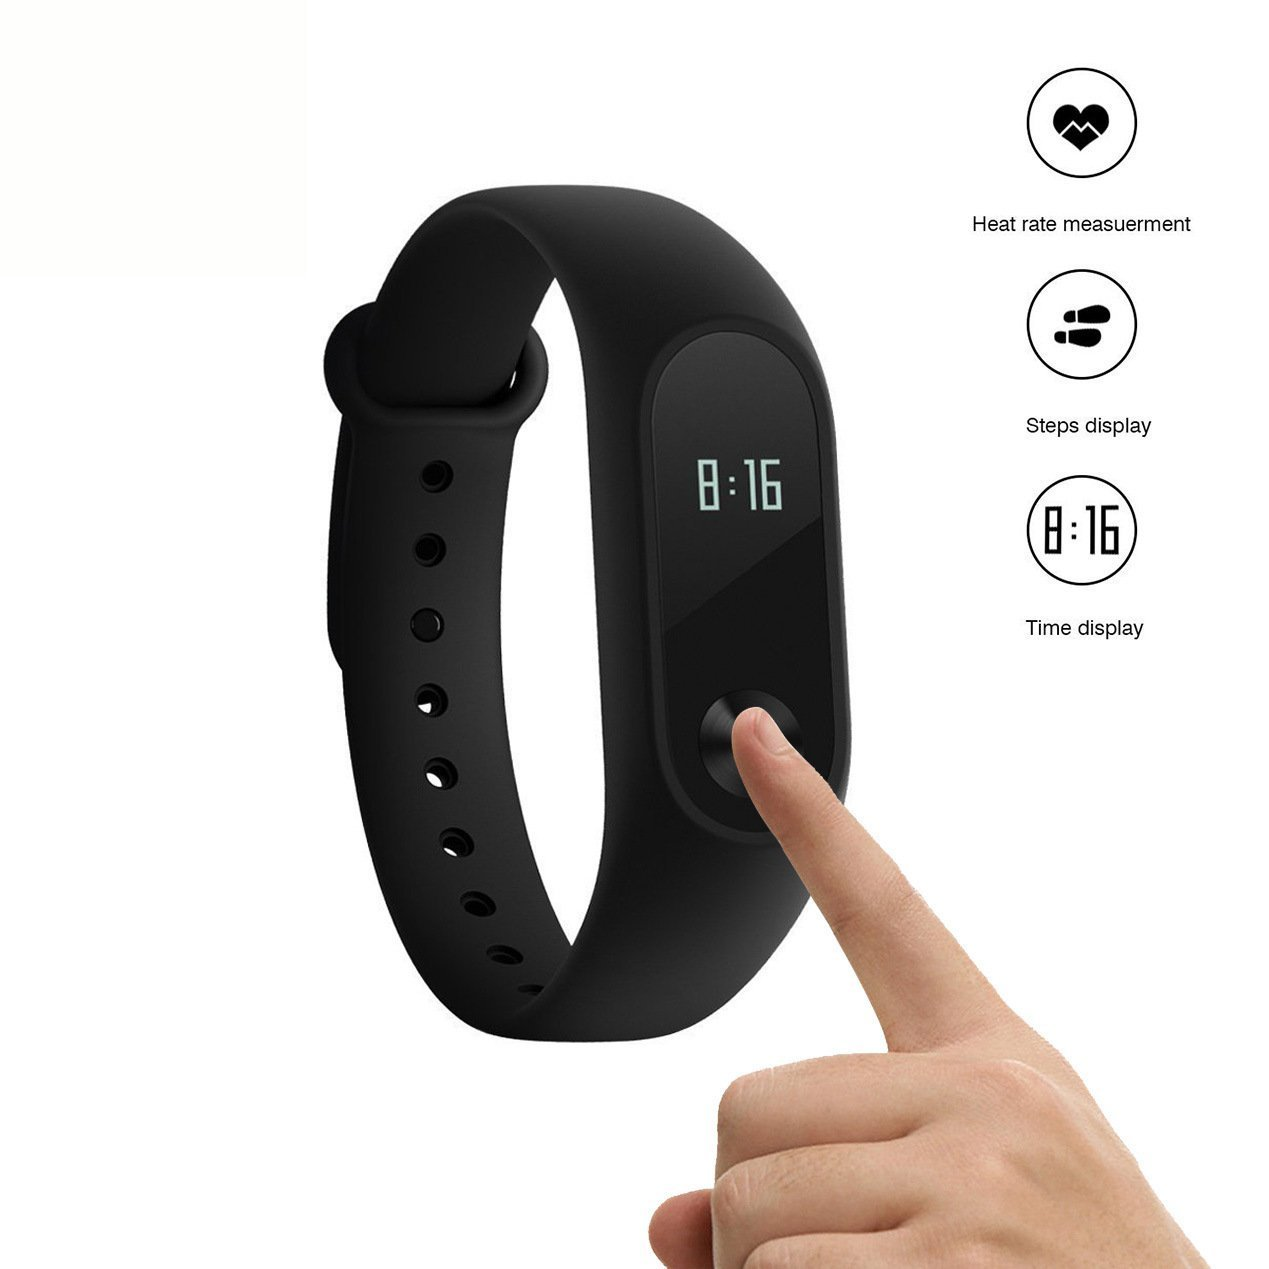 Xiaomi Mi Band 2 Armband Aktivitä ts Tracker Herzfrequenzmesser Internationale Version 602693350143